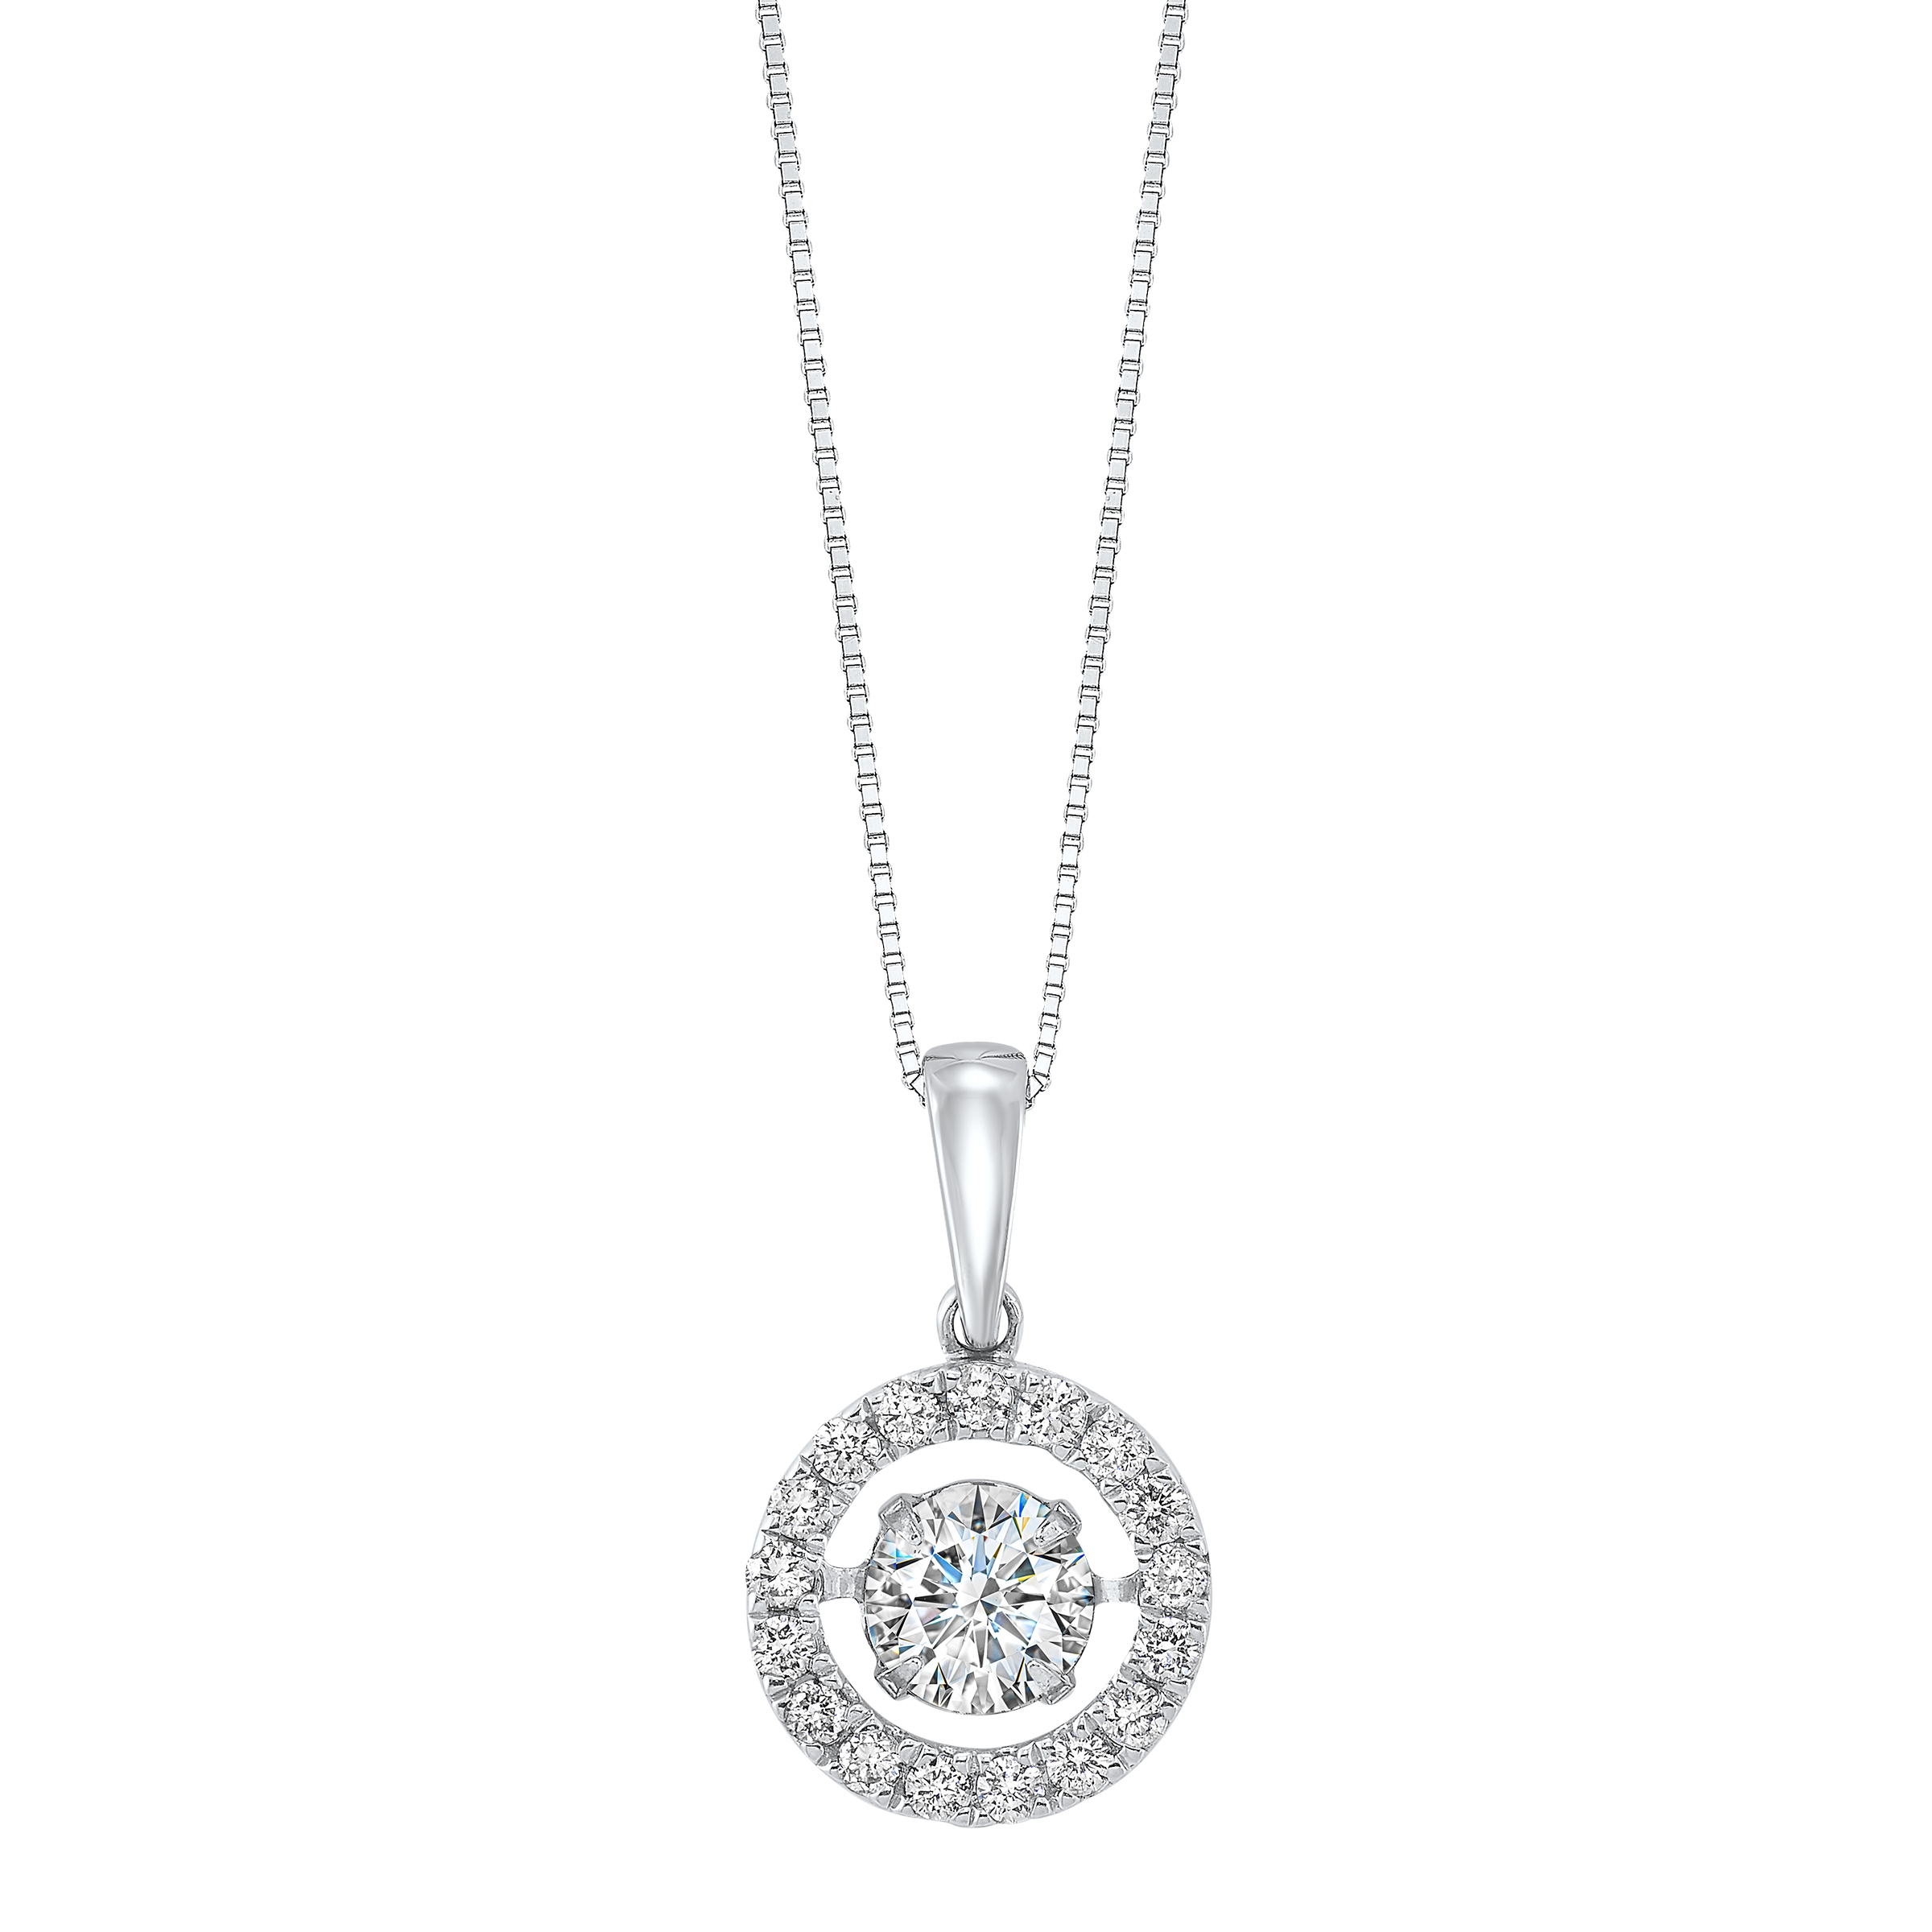 14K White Gold Rhythm of Love Halo Prong Diamond Pendant 3/4CT Moseley Diamond Showcase Inc Columbia, SC